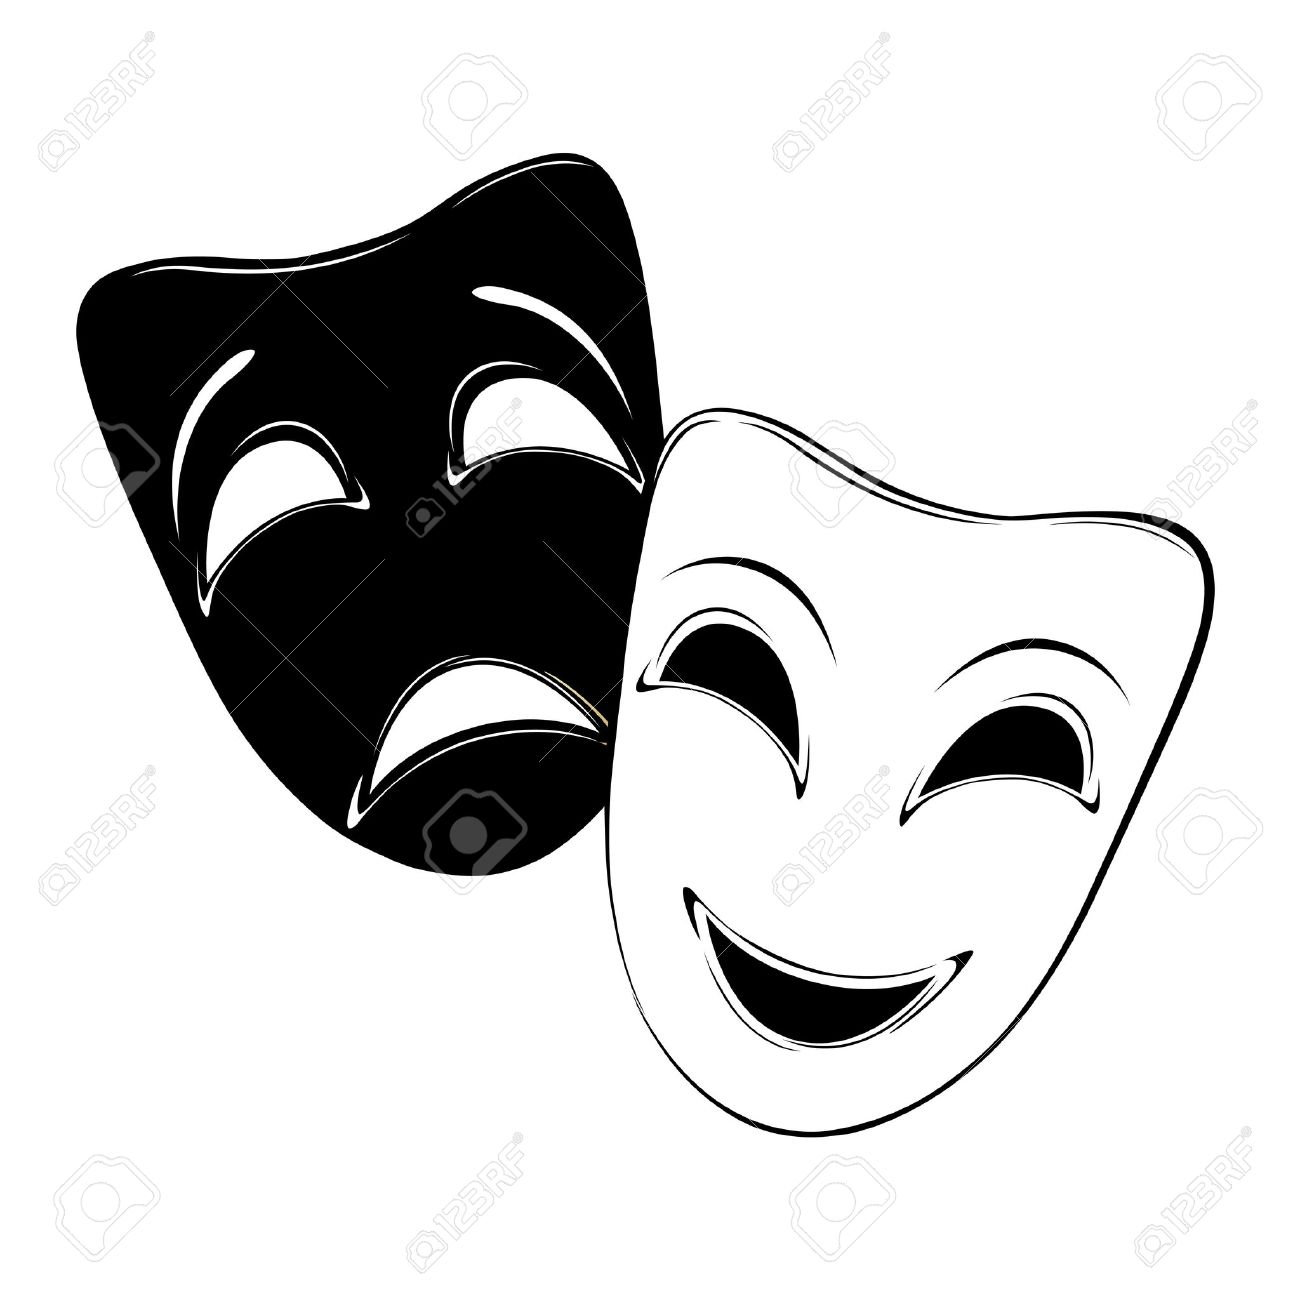 Theatrical mask on a white background - 17900247